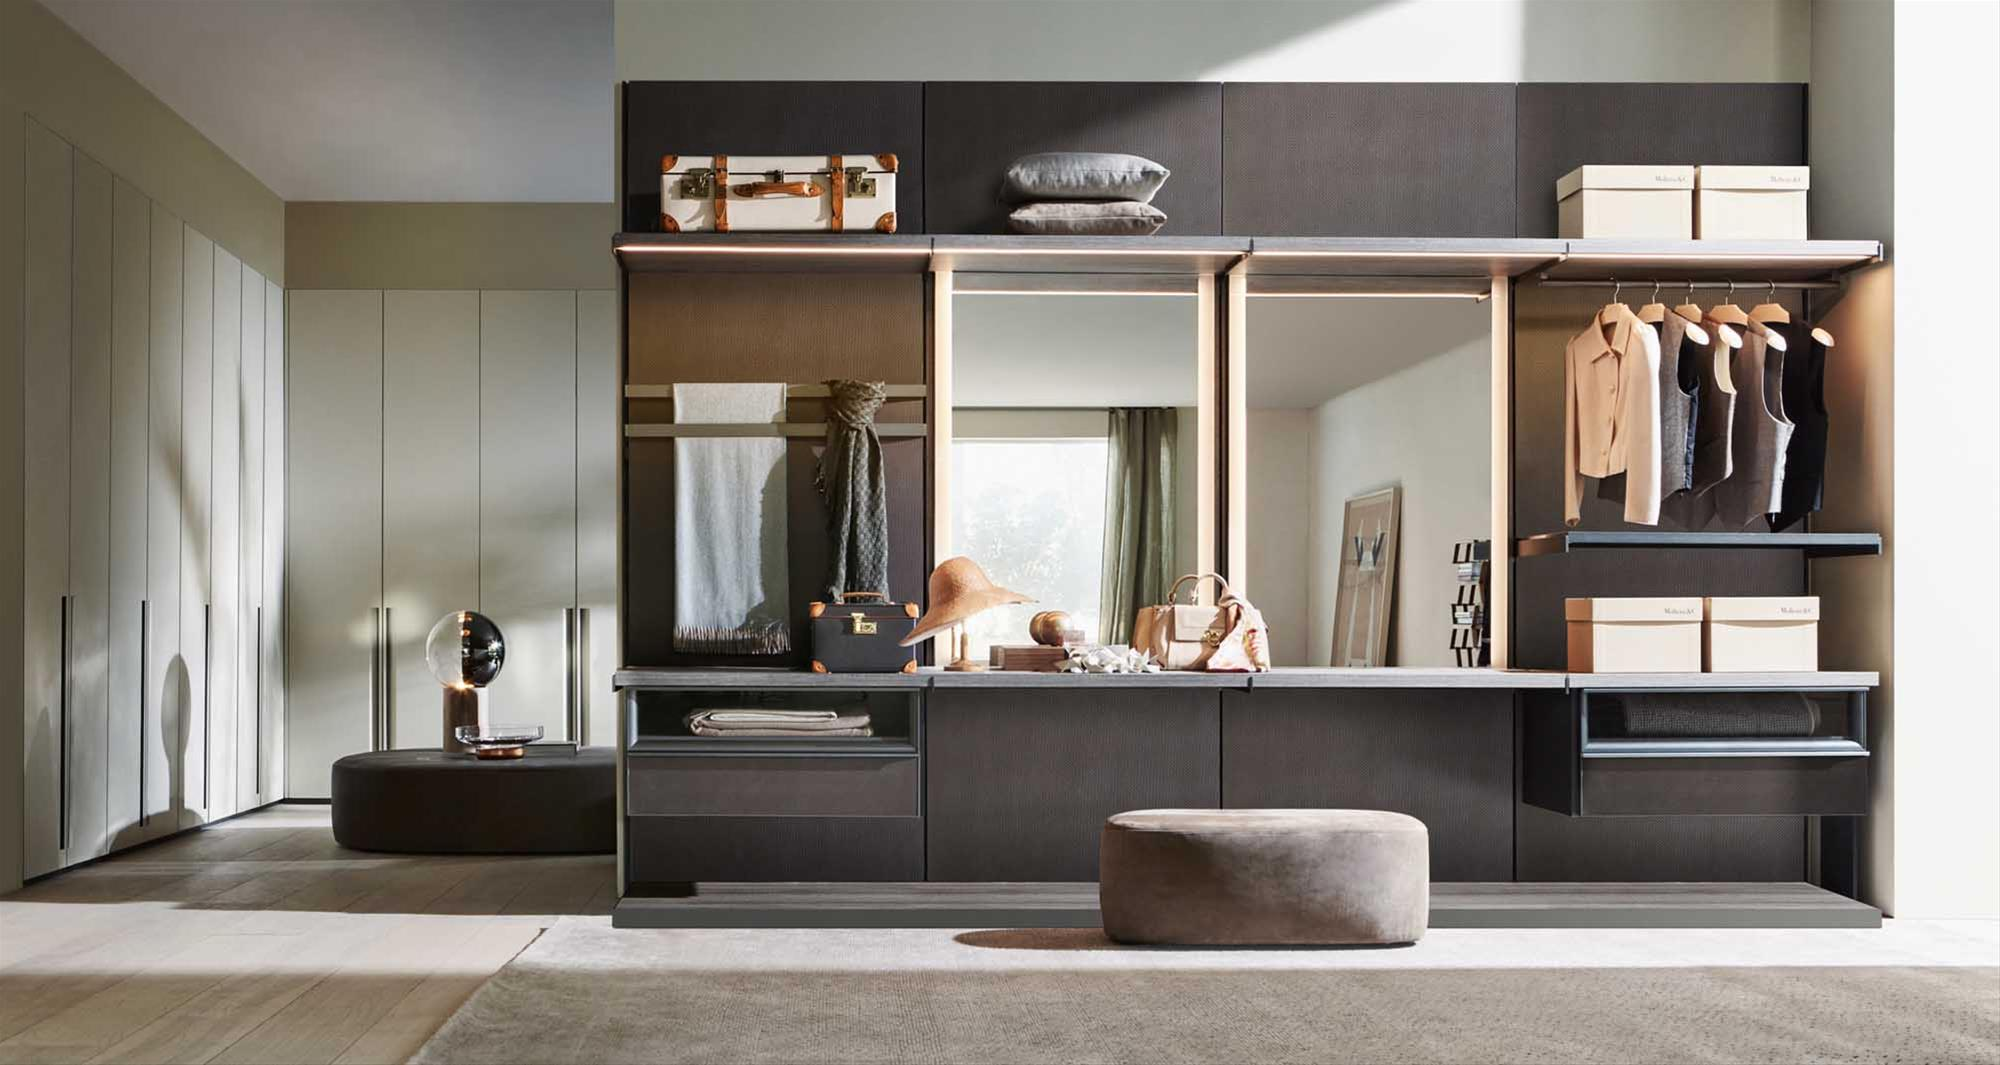 l esclusiva cabina armadio di molteni corso europa. Black Bedroom Furniture Sets. Home Design Ideas